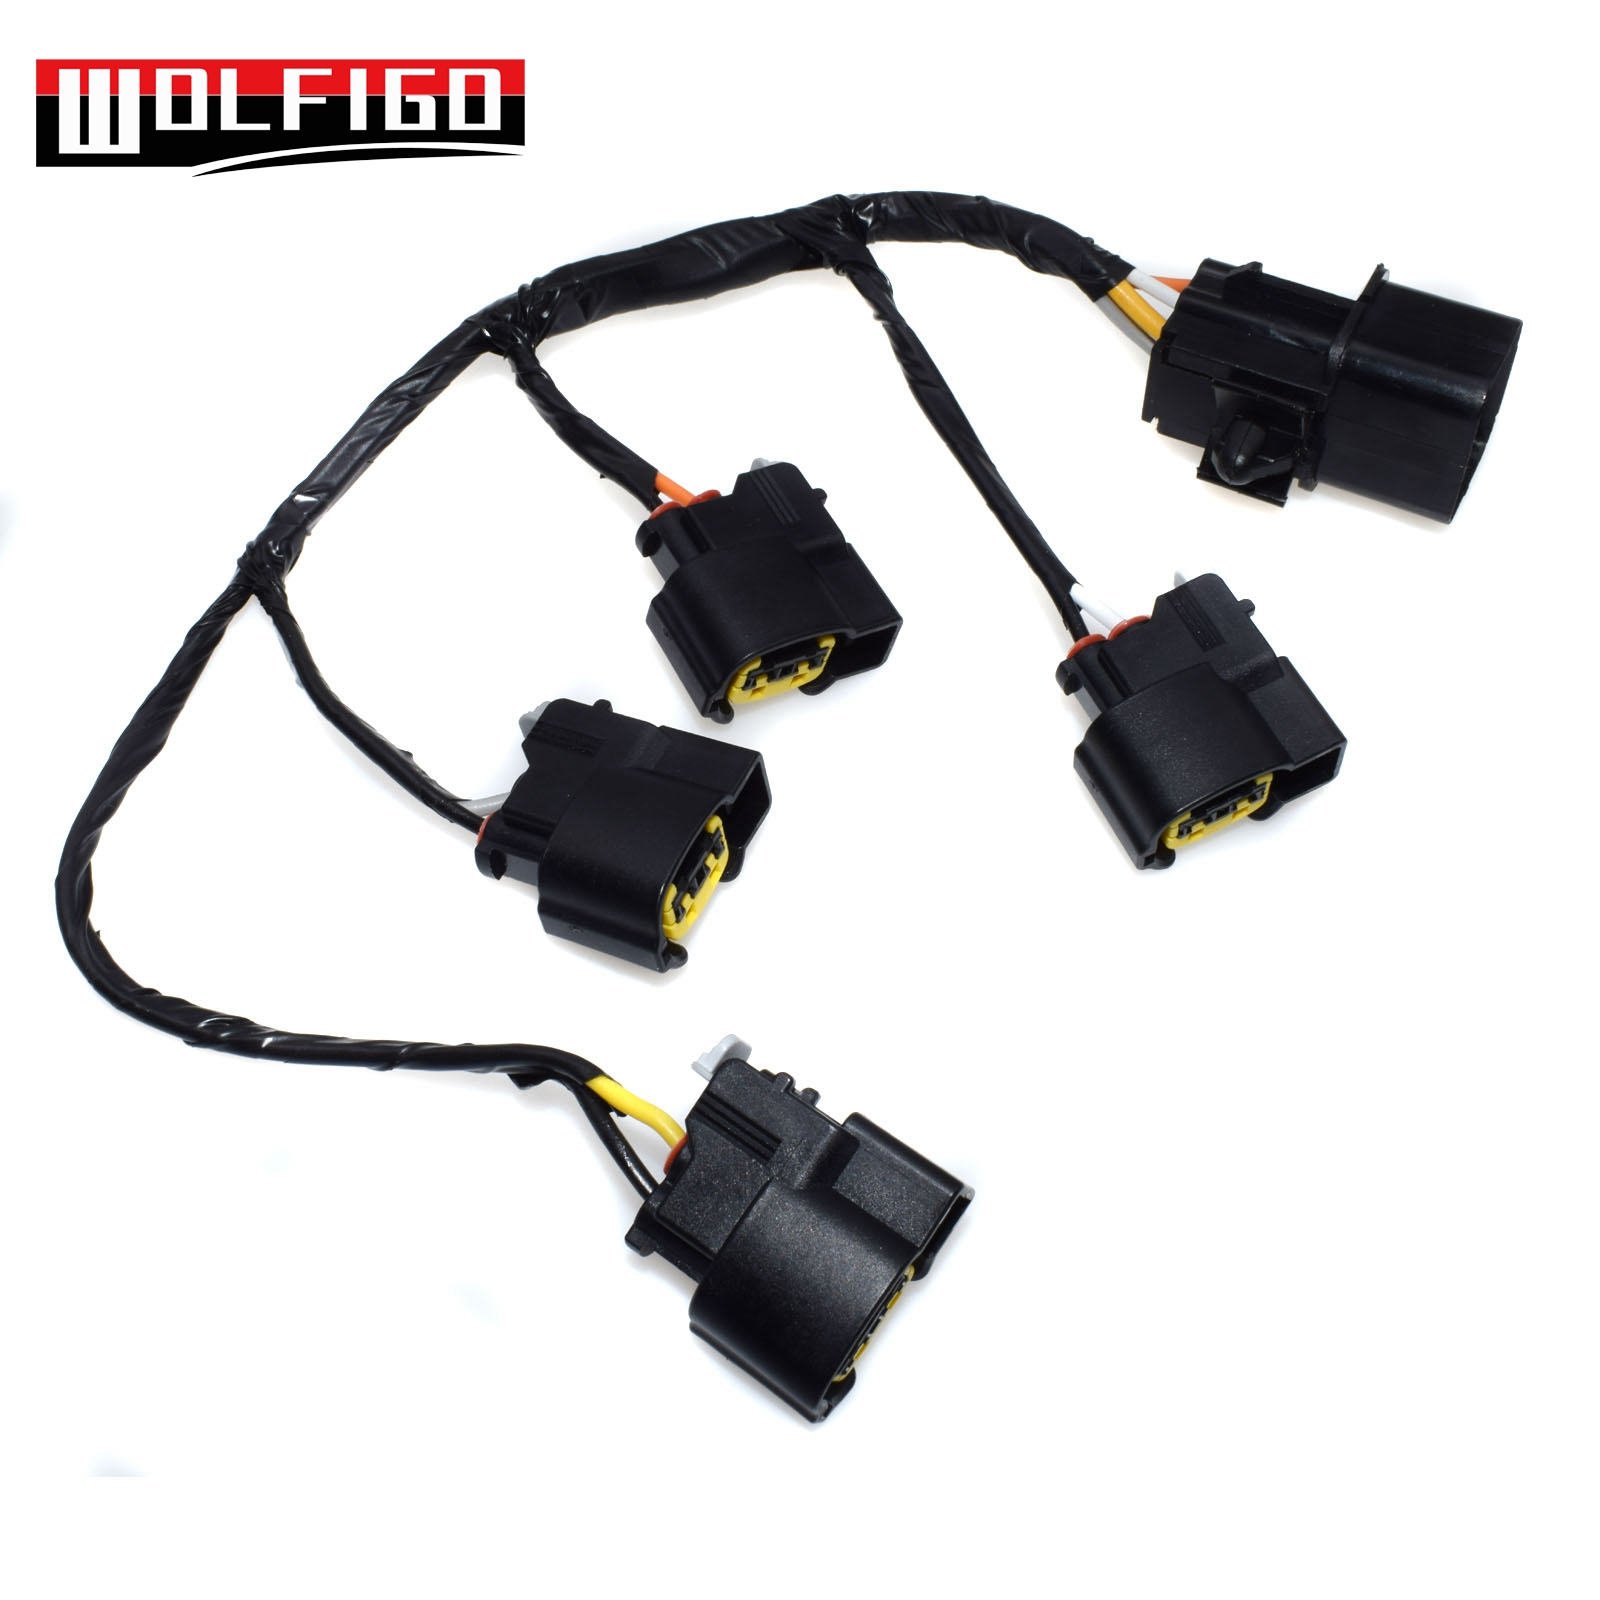 wolfigo new ignition coil wire harness for hyundai kia veloster rio 1 6l 27350 2b000 27350 2b000 273502b000 [ 1600 x 1600 Pixel ]